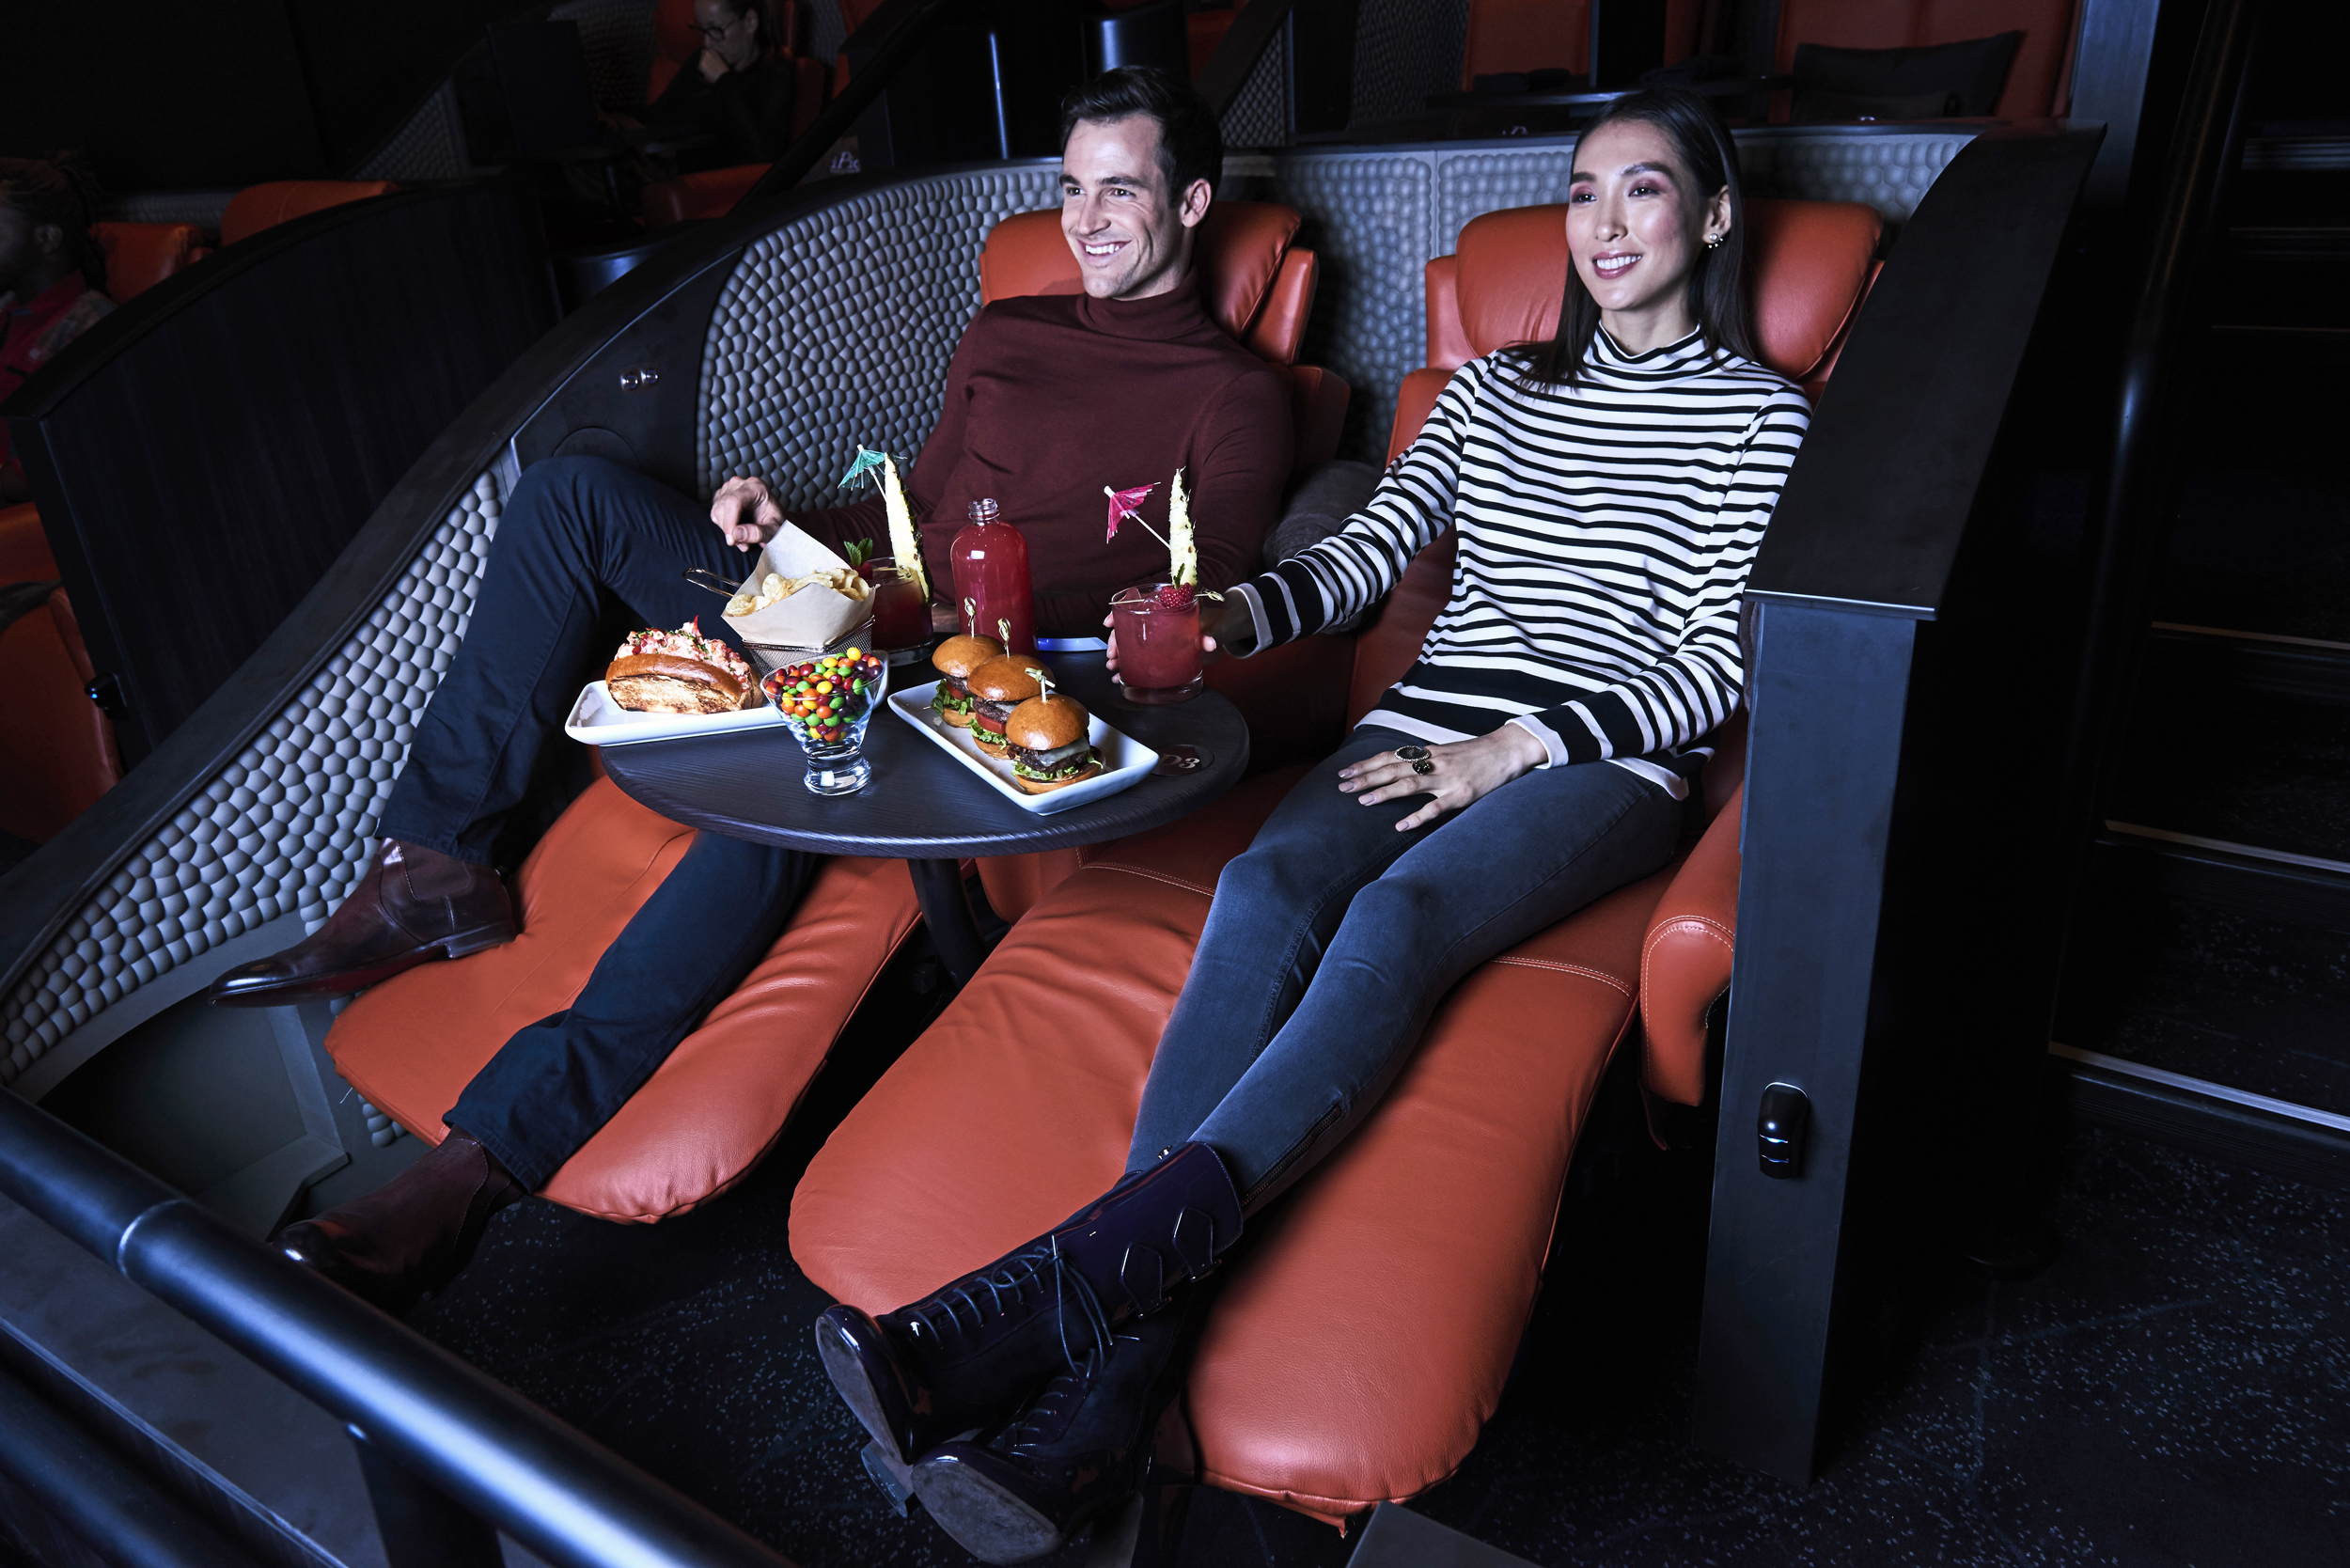 Image: iPic offers finger foods and alcohol and chaise lounge seating.